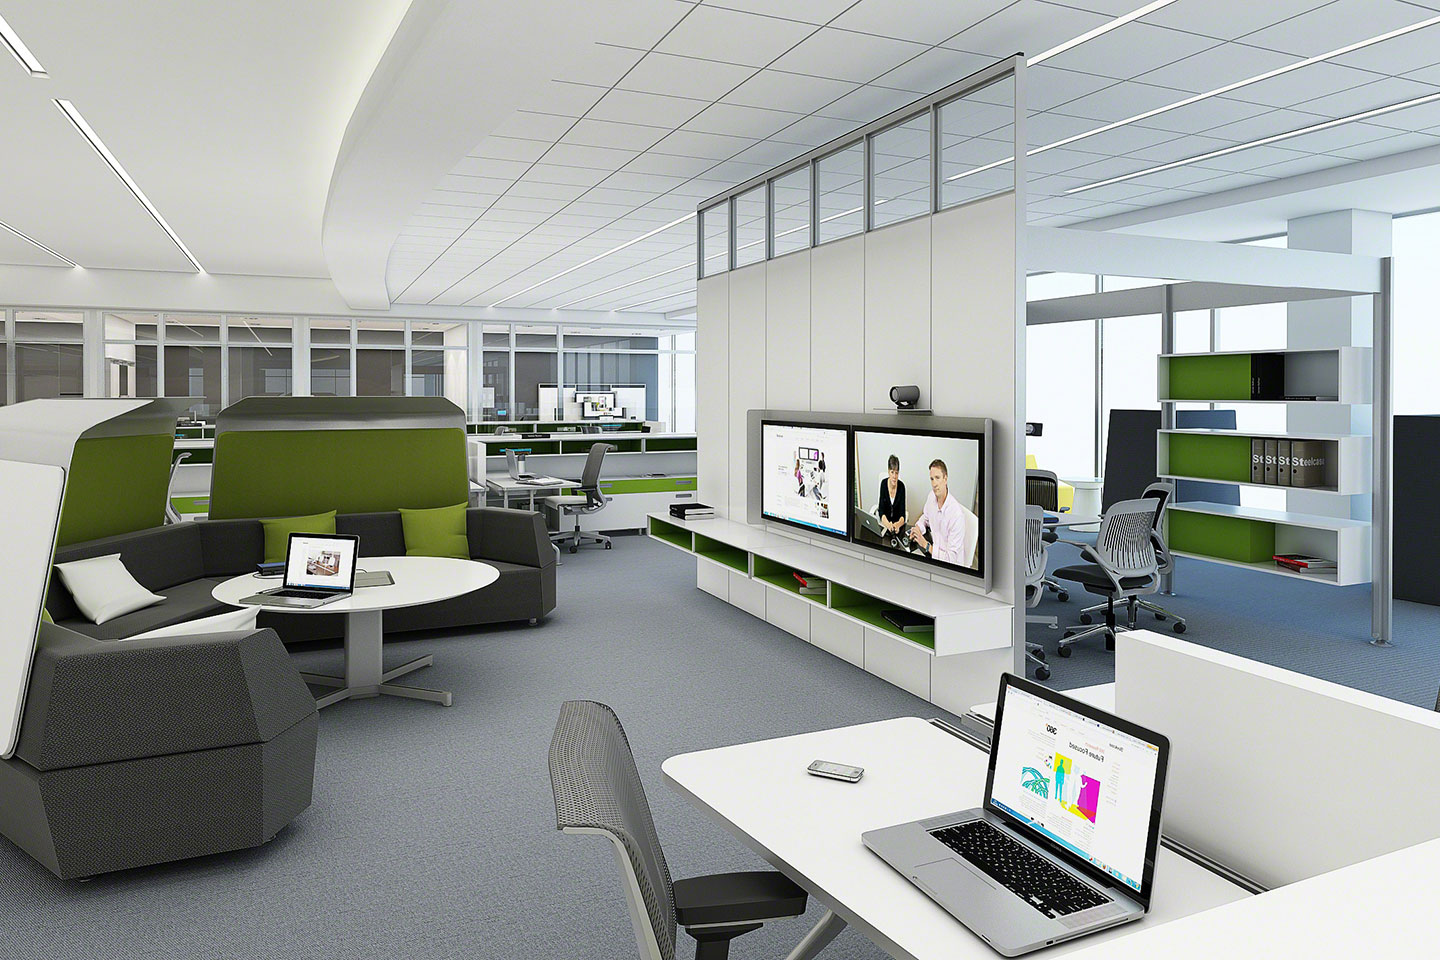 Simple office layout fixes to strengthen office for Design an office space layout online